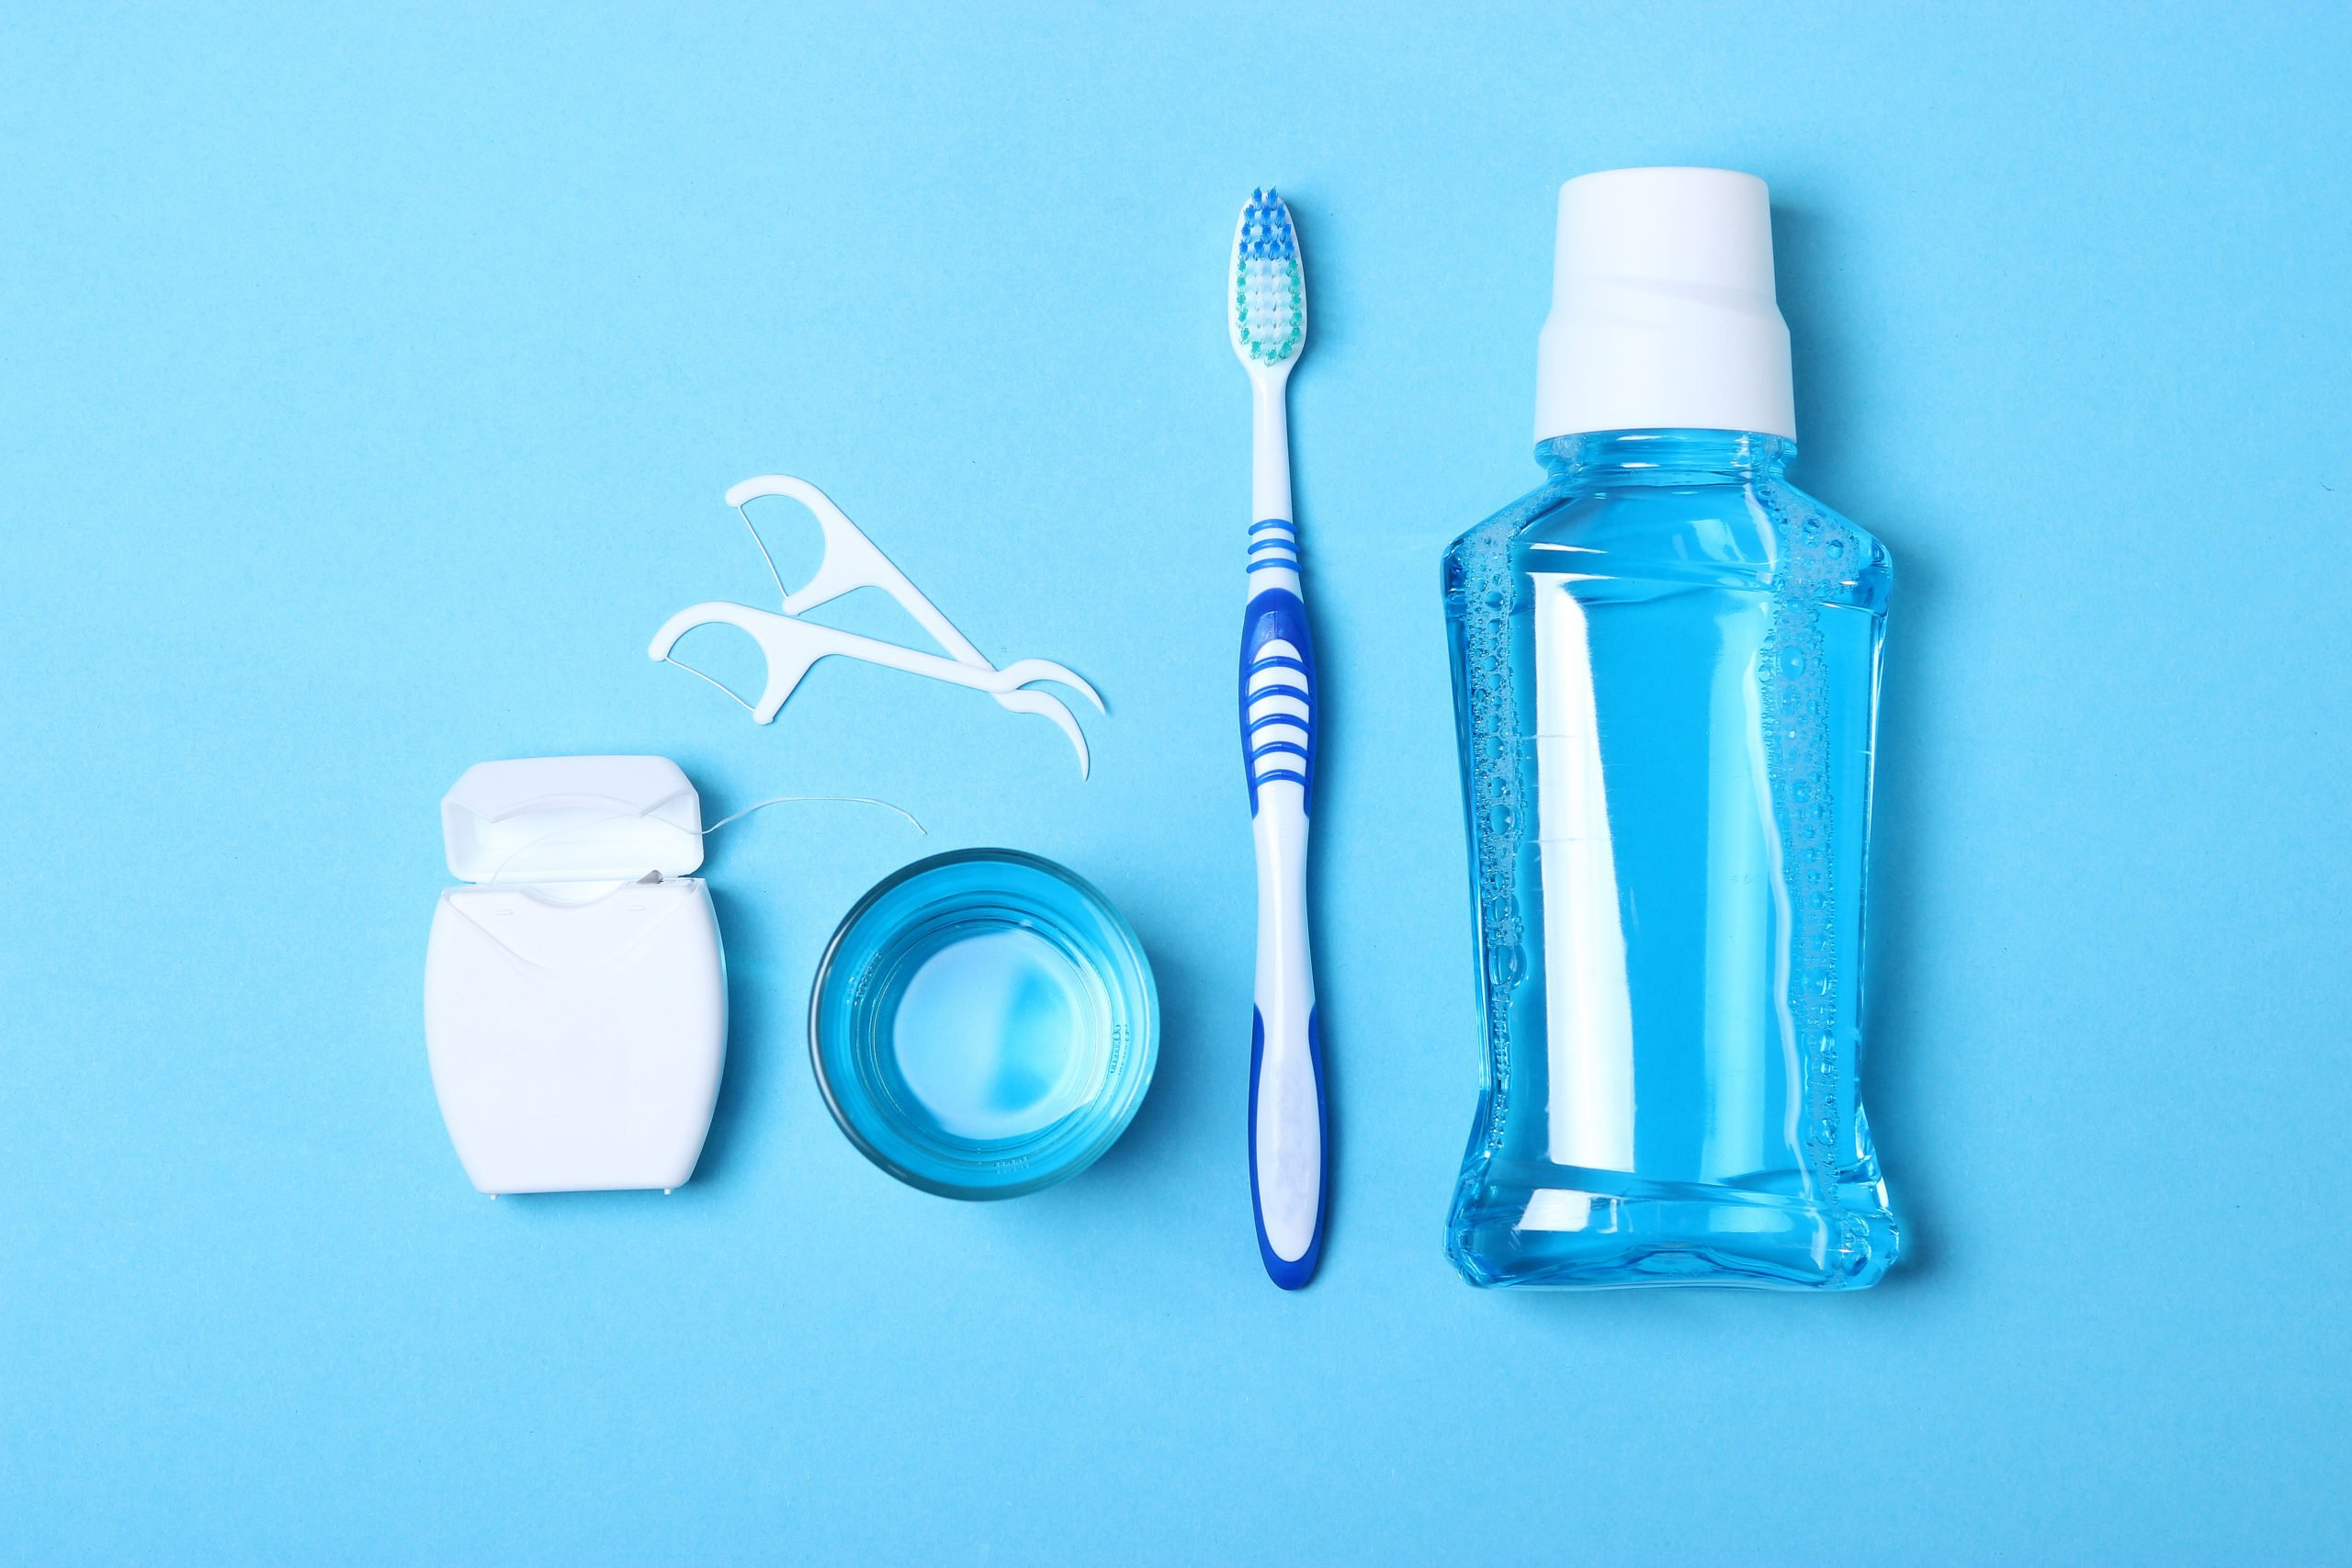 oral care instruments and fluoride on blue background